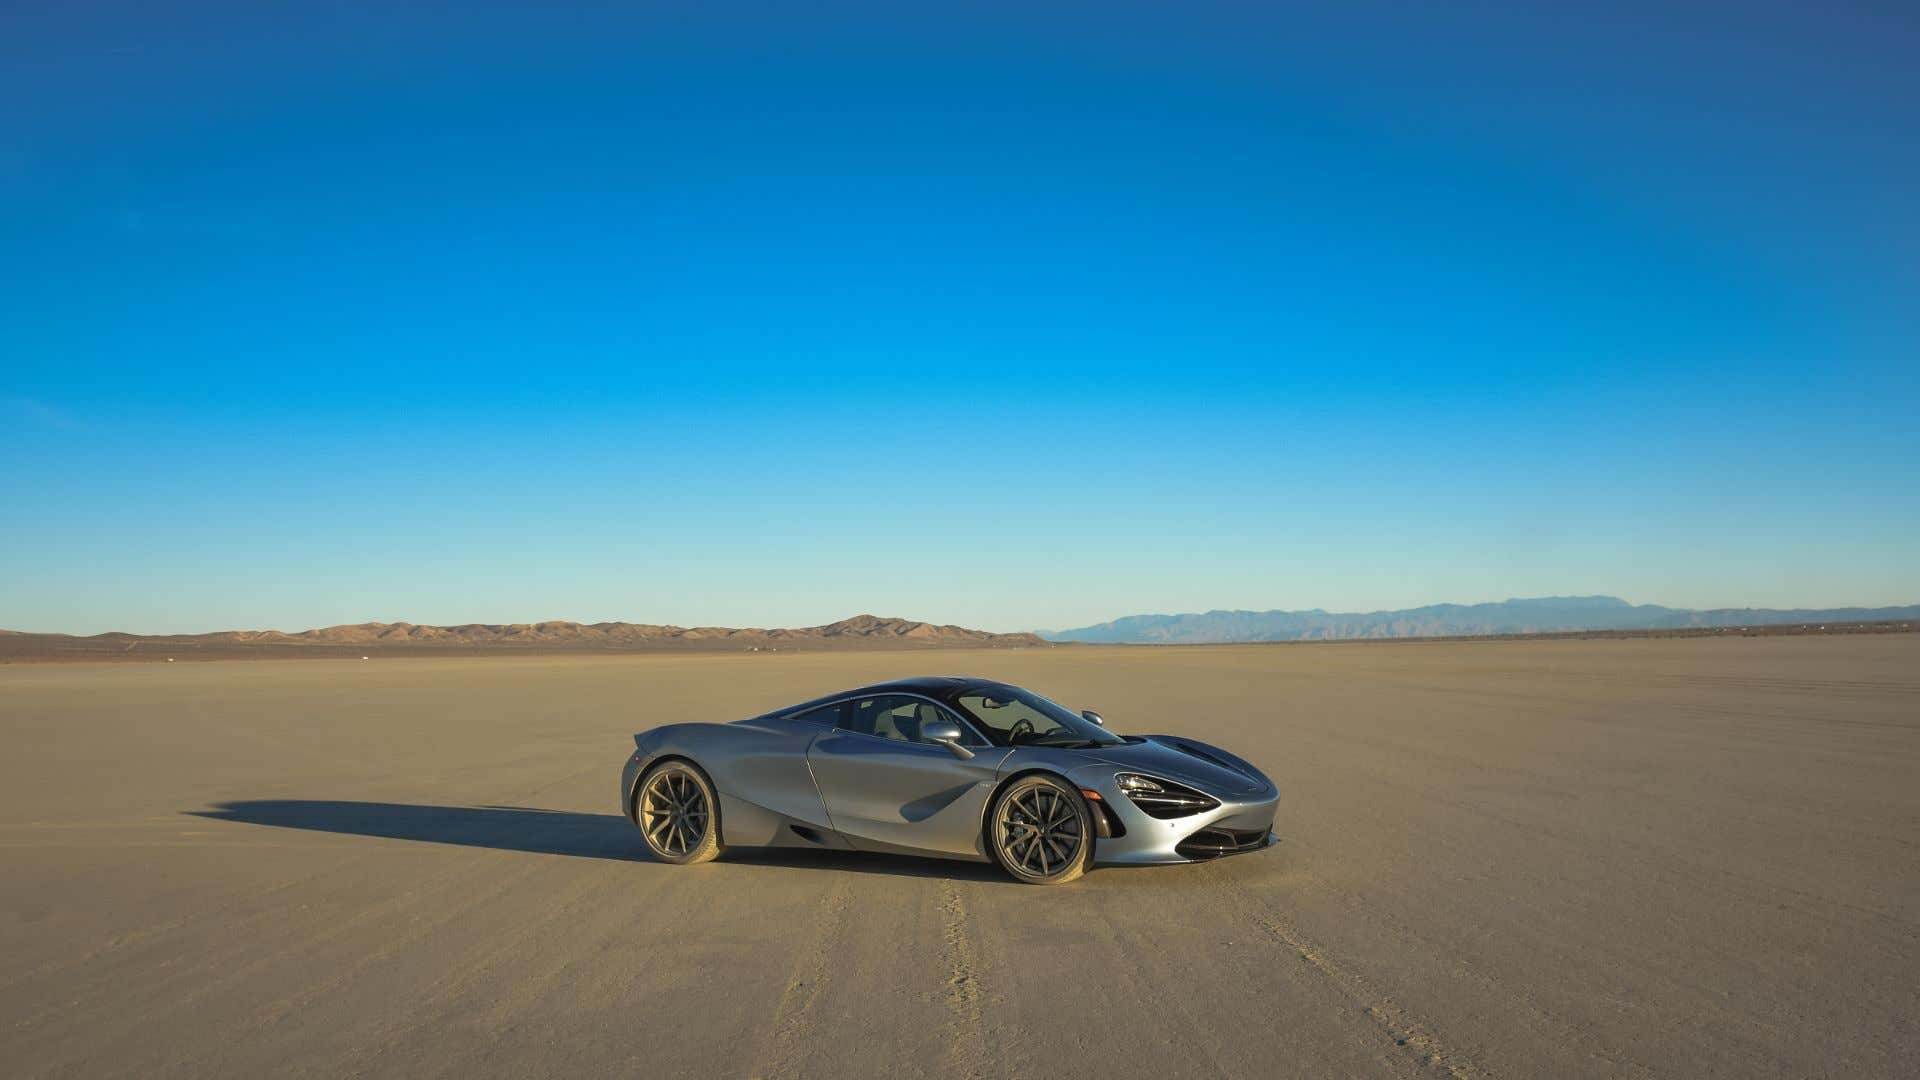 A twin-turbocharged McLaren 720S on El Mirage's dry lakebed.